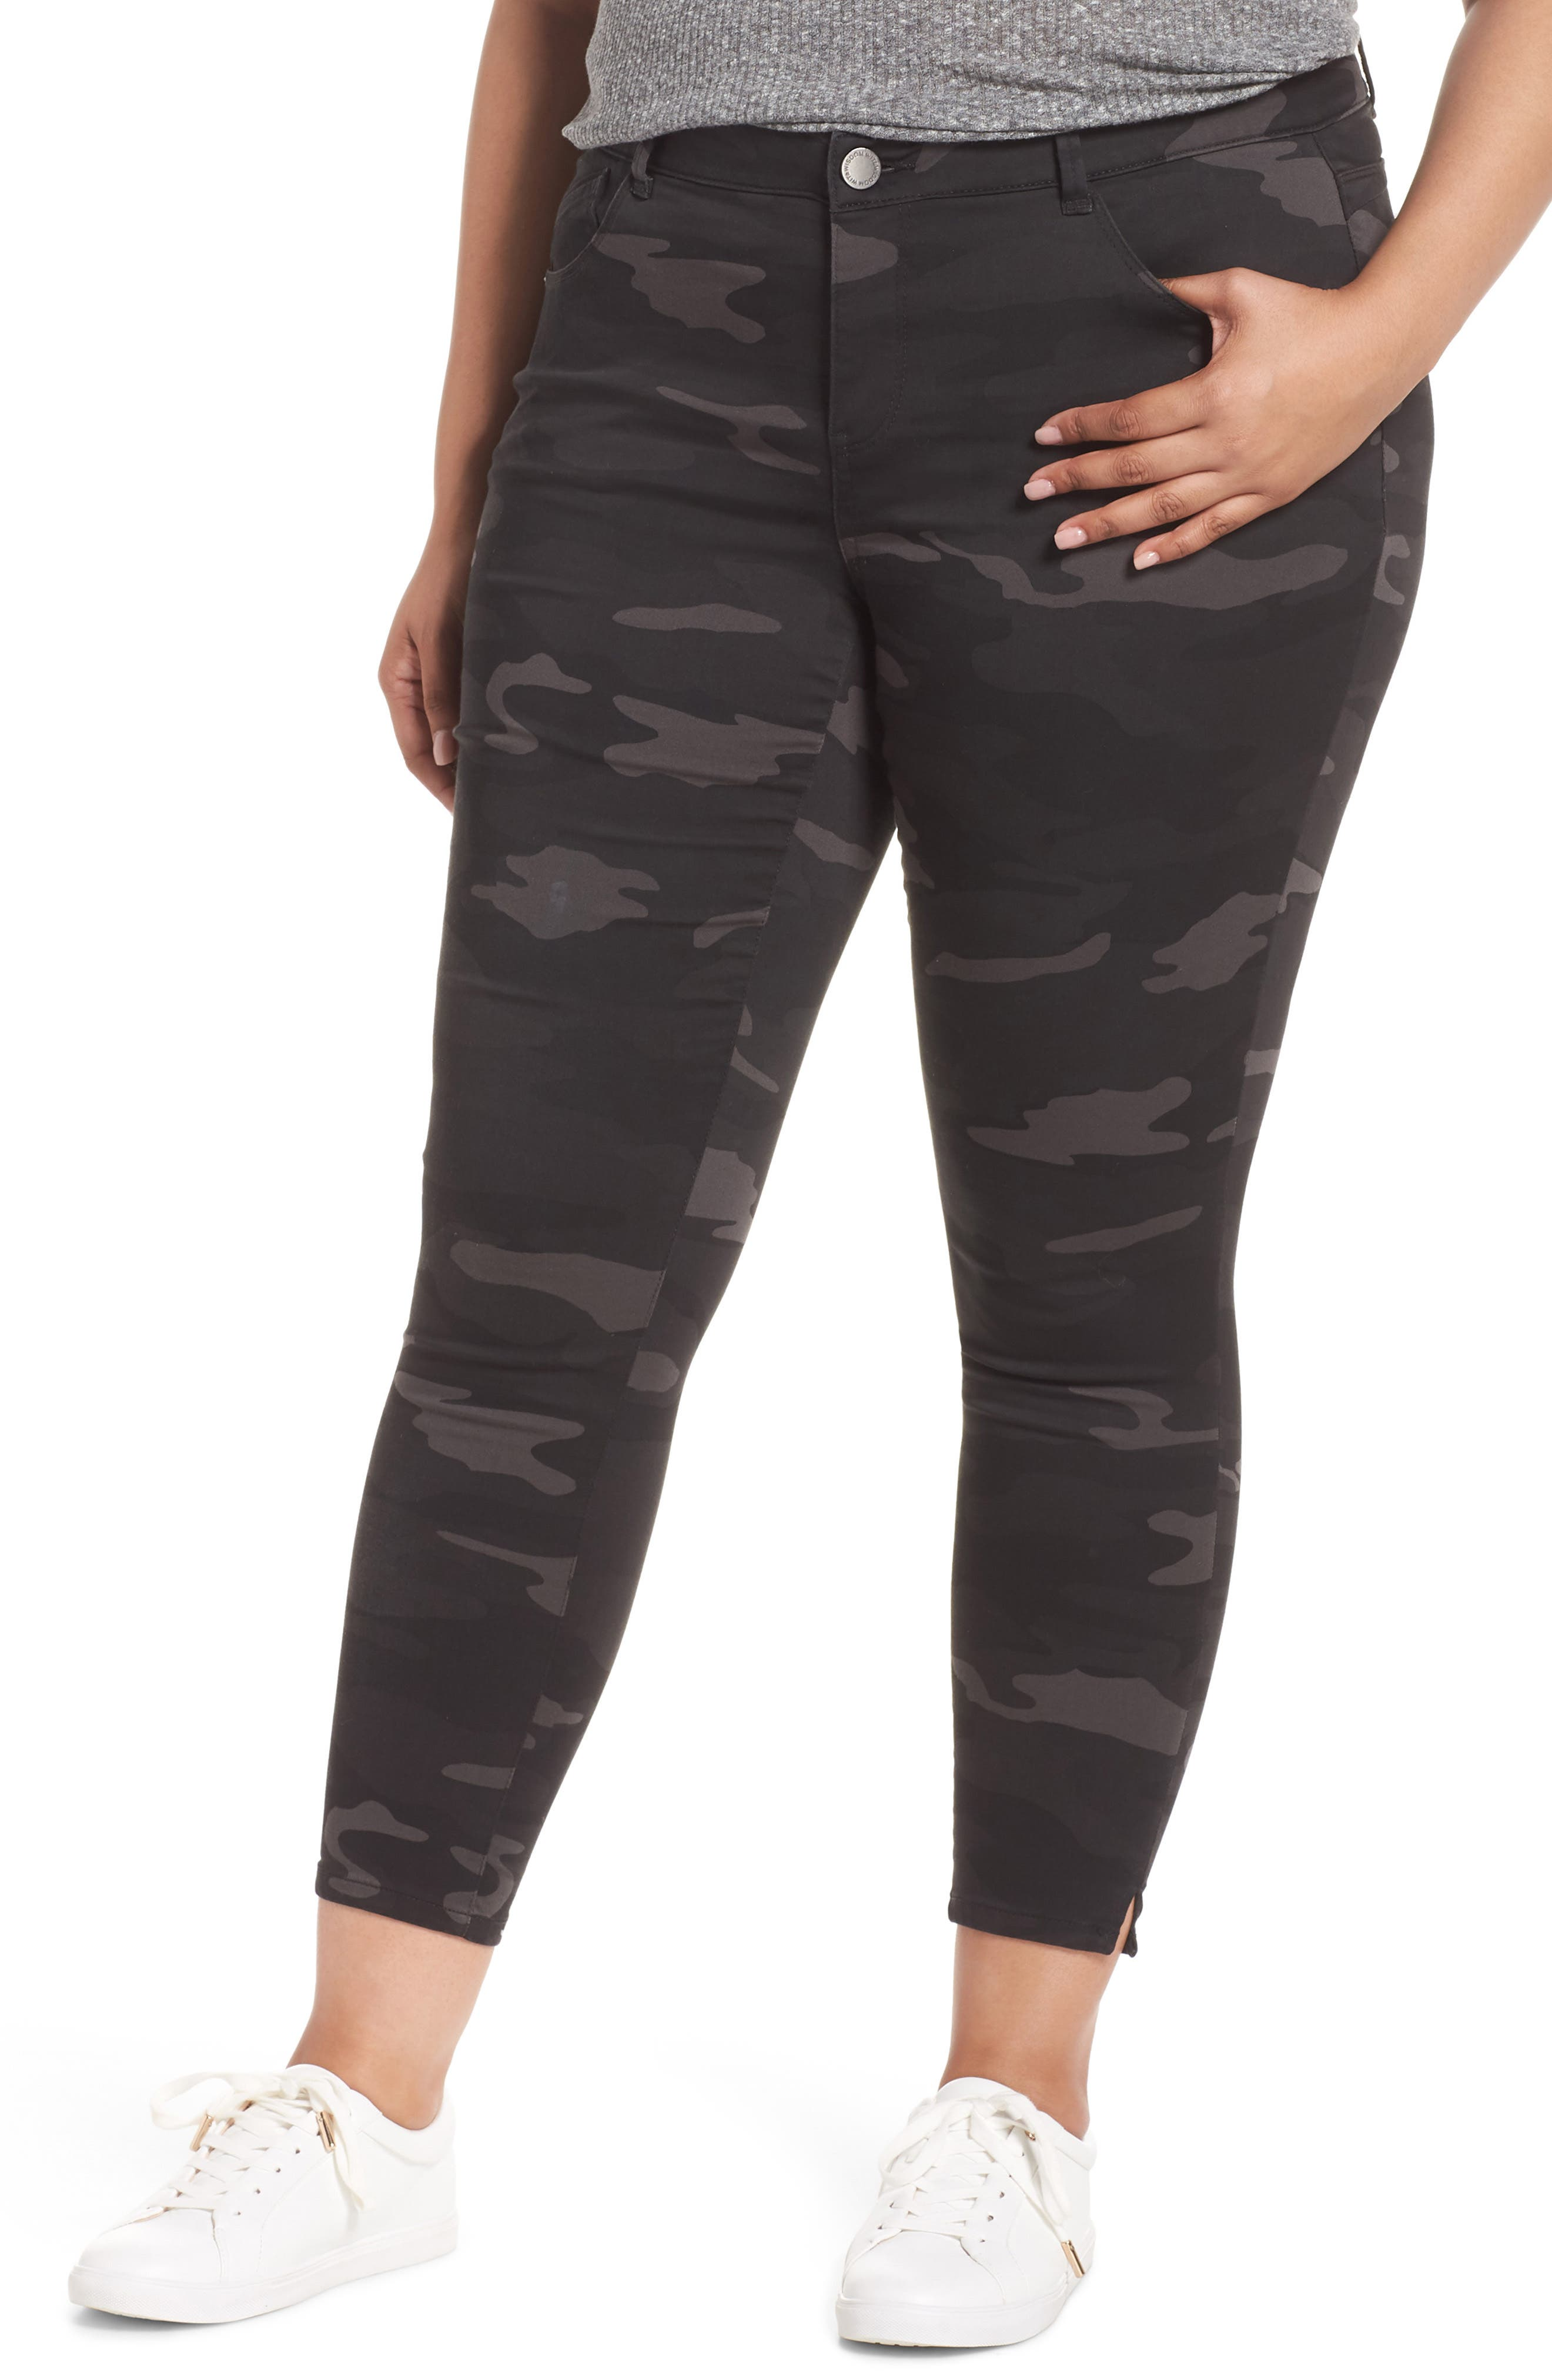 Ab-Solution Ankle Skimmer Jeans,                             Main thumbnail 1, color,                             BLACK/ CAMO